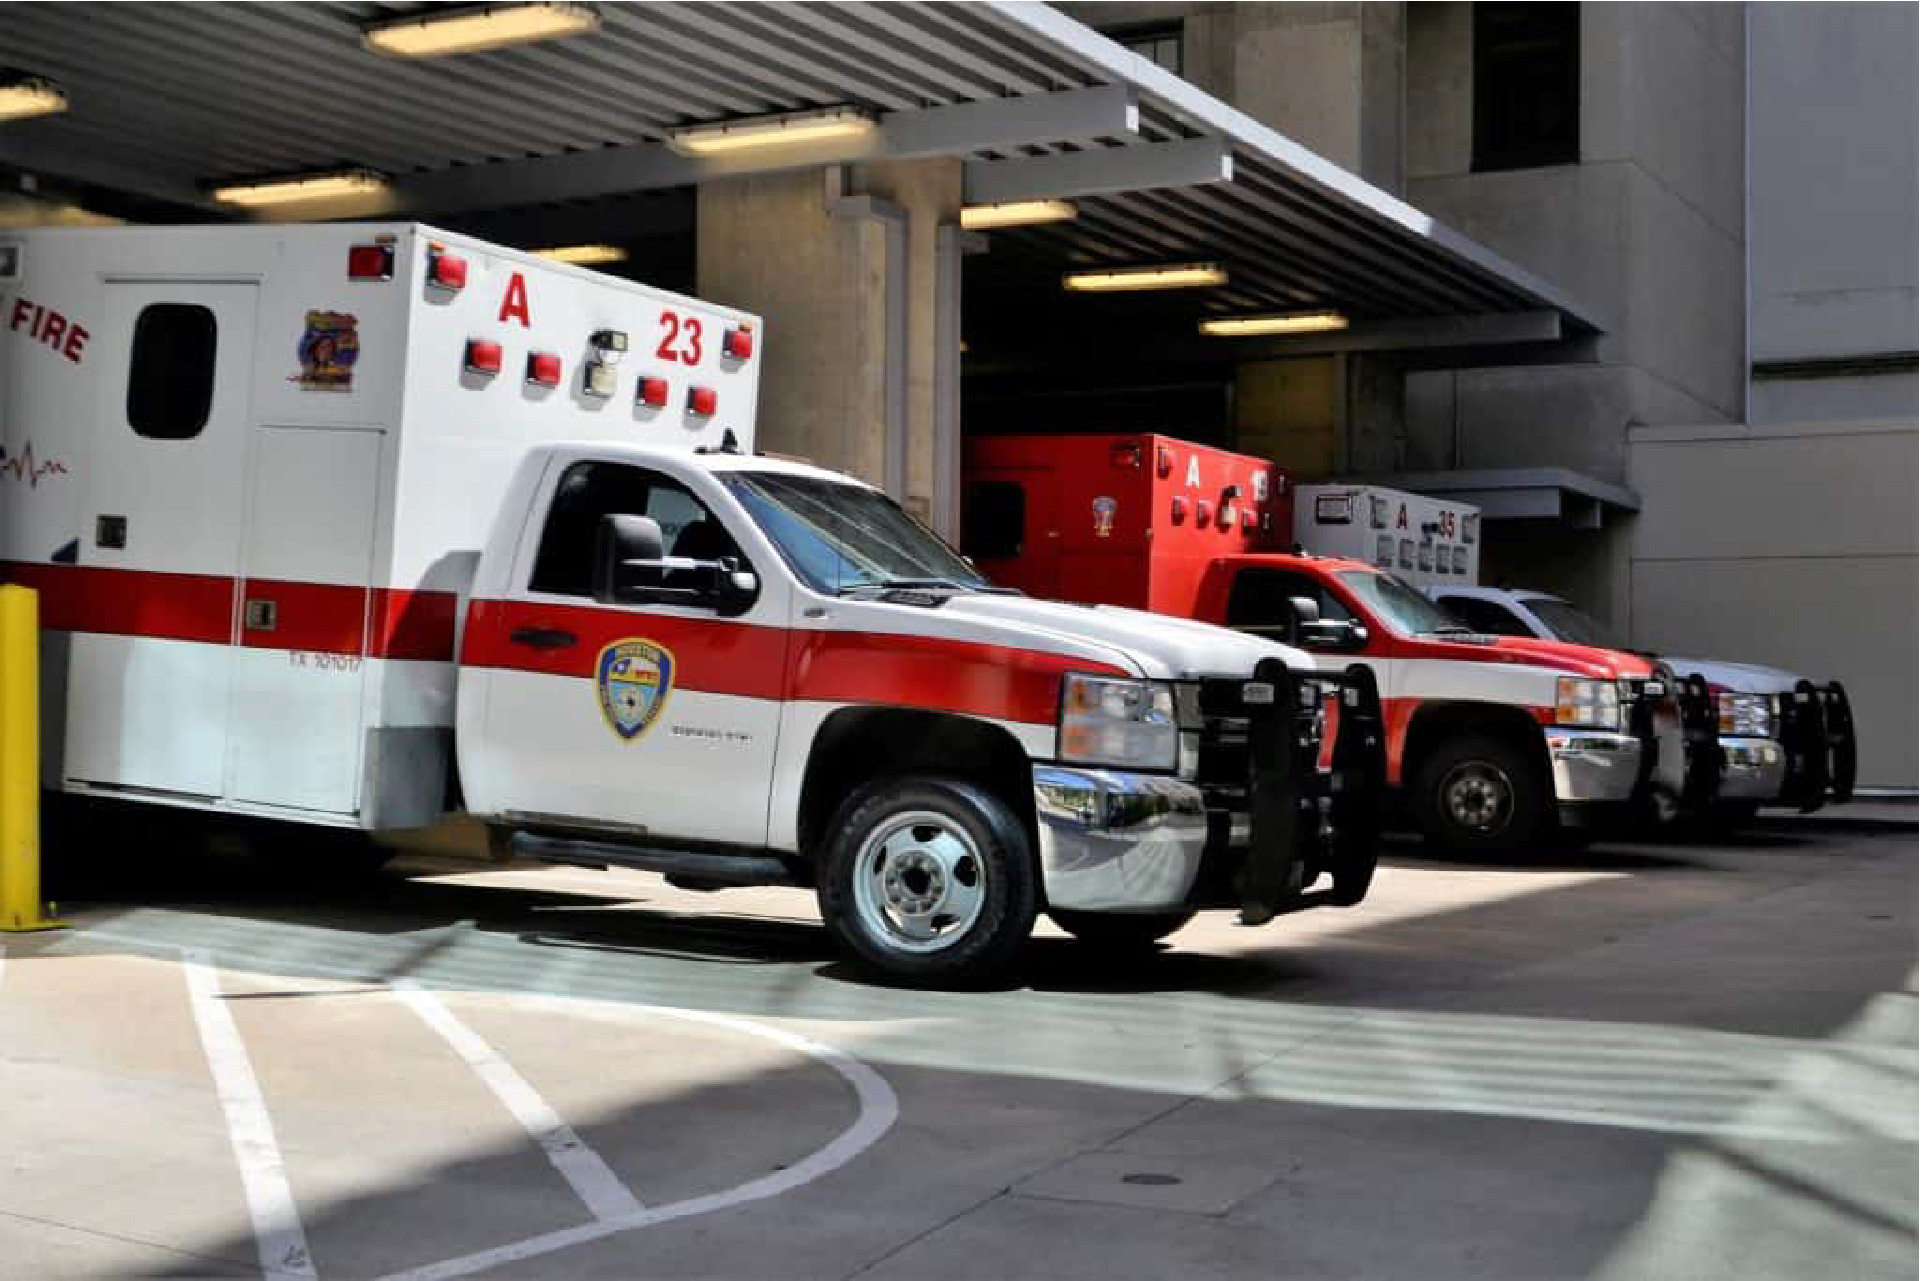 Ambulances in ambulance bay at hospital